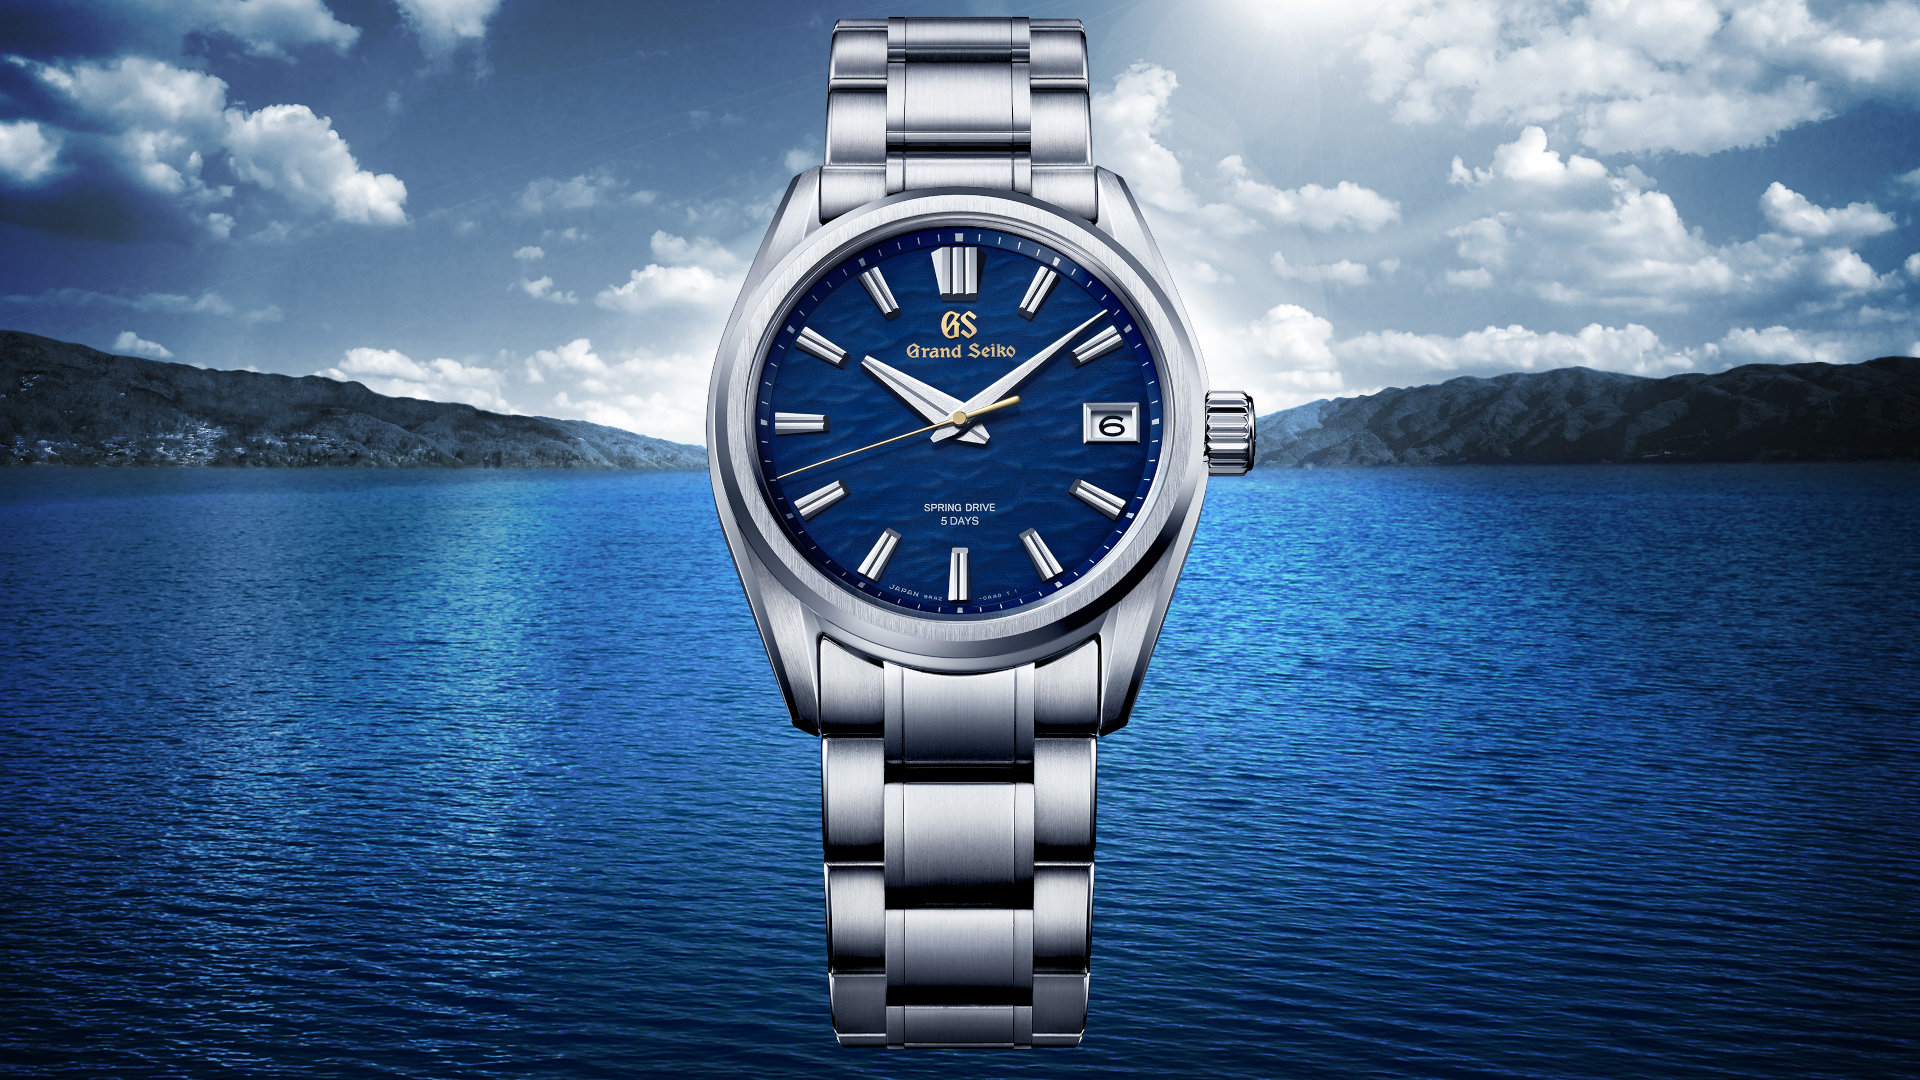 Grand Seiko's SLGA007 Offers A Dial Inspired By The Shimmering Light On A Calm Lake Surface